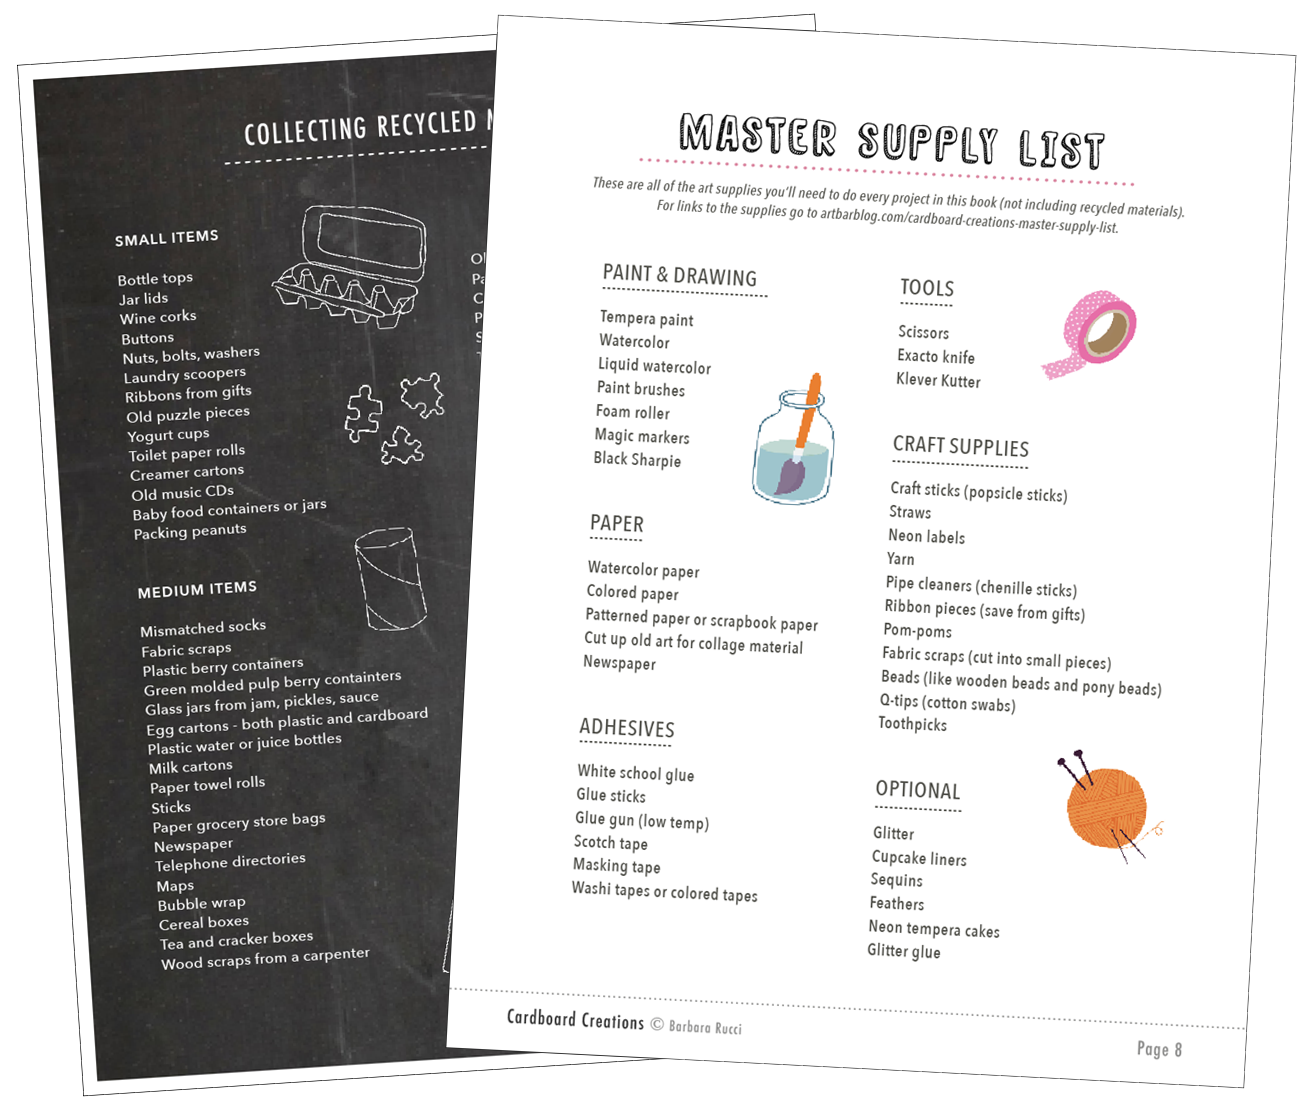 Master supply lists from Cardboard Creations by Barbara Rucci